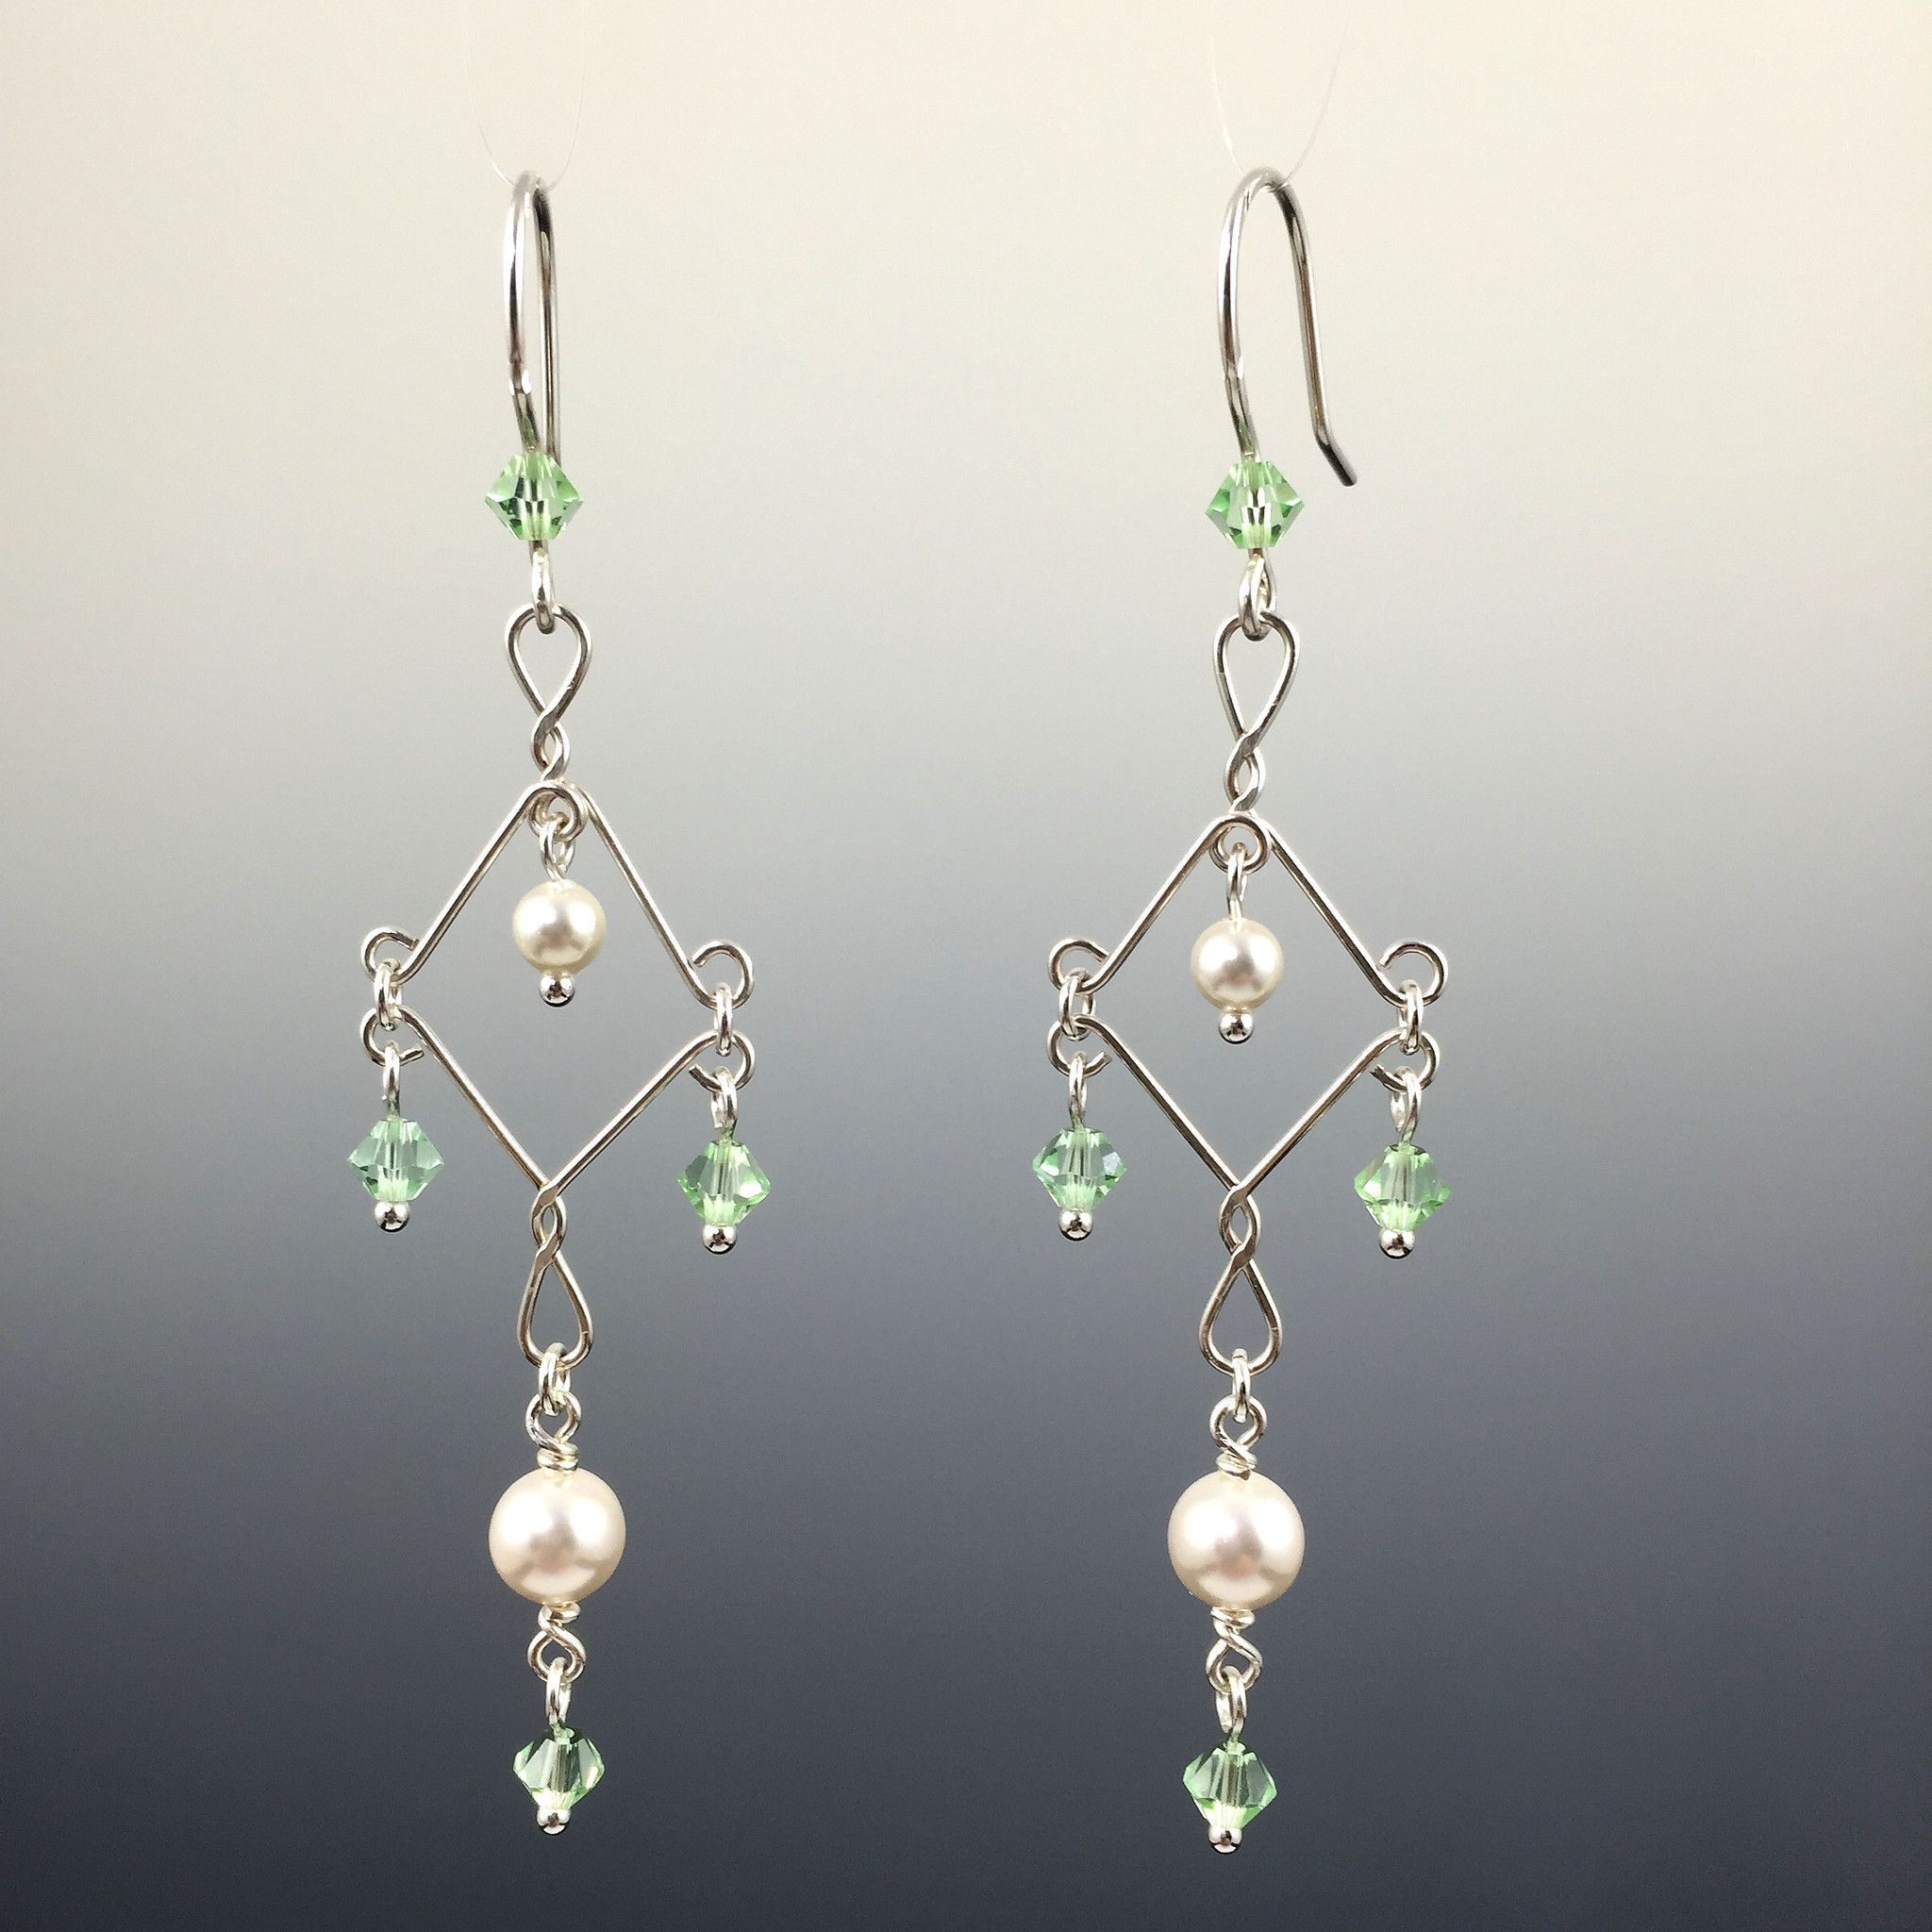 Swarovski Crystal Pearl Fancy Chandelier Earrings | Chandelier ...